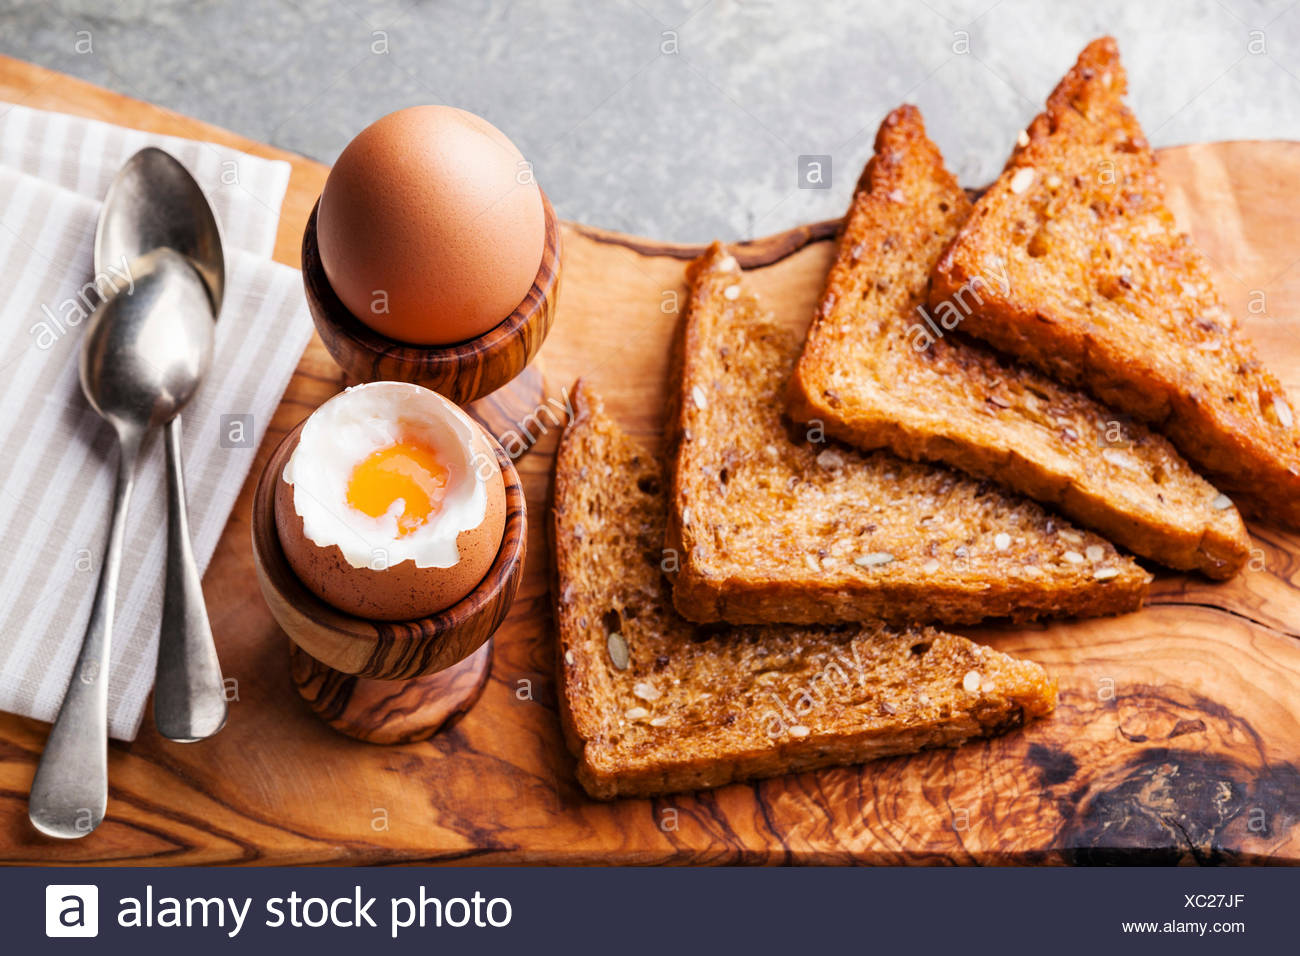 Boiled eggs for breakfast in olive wood egg cups - Stock Image